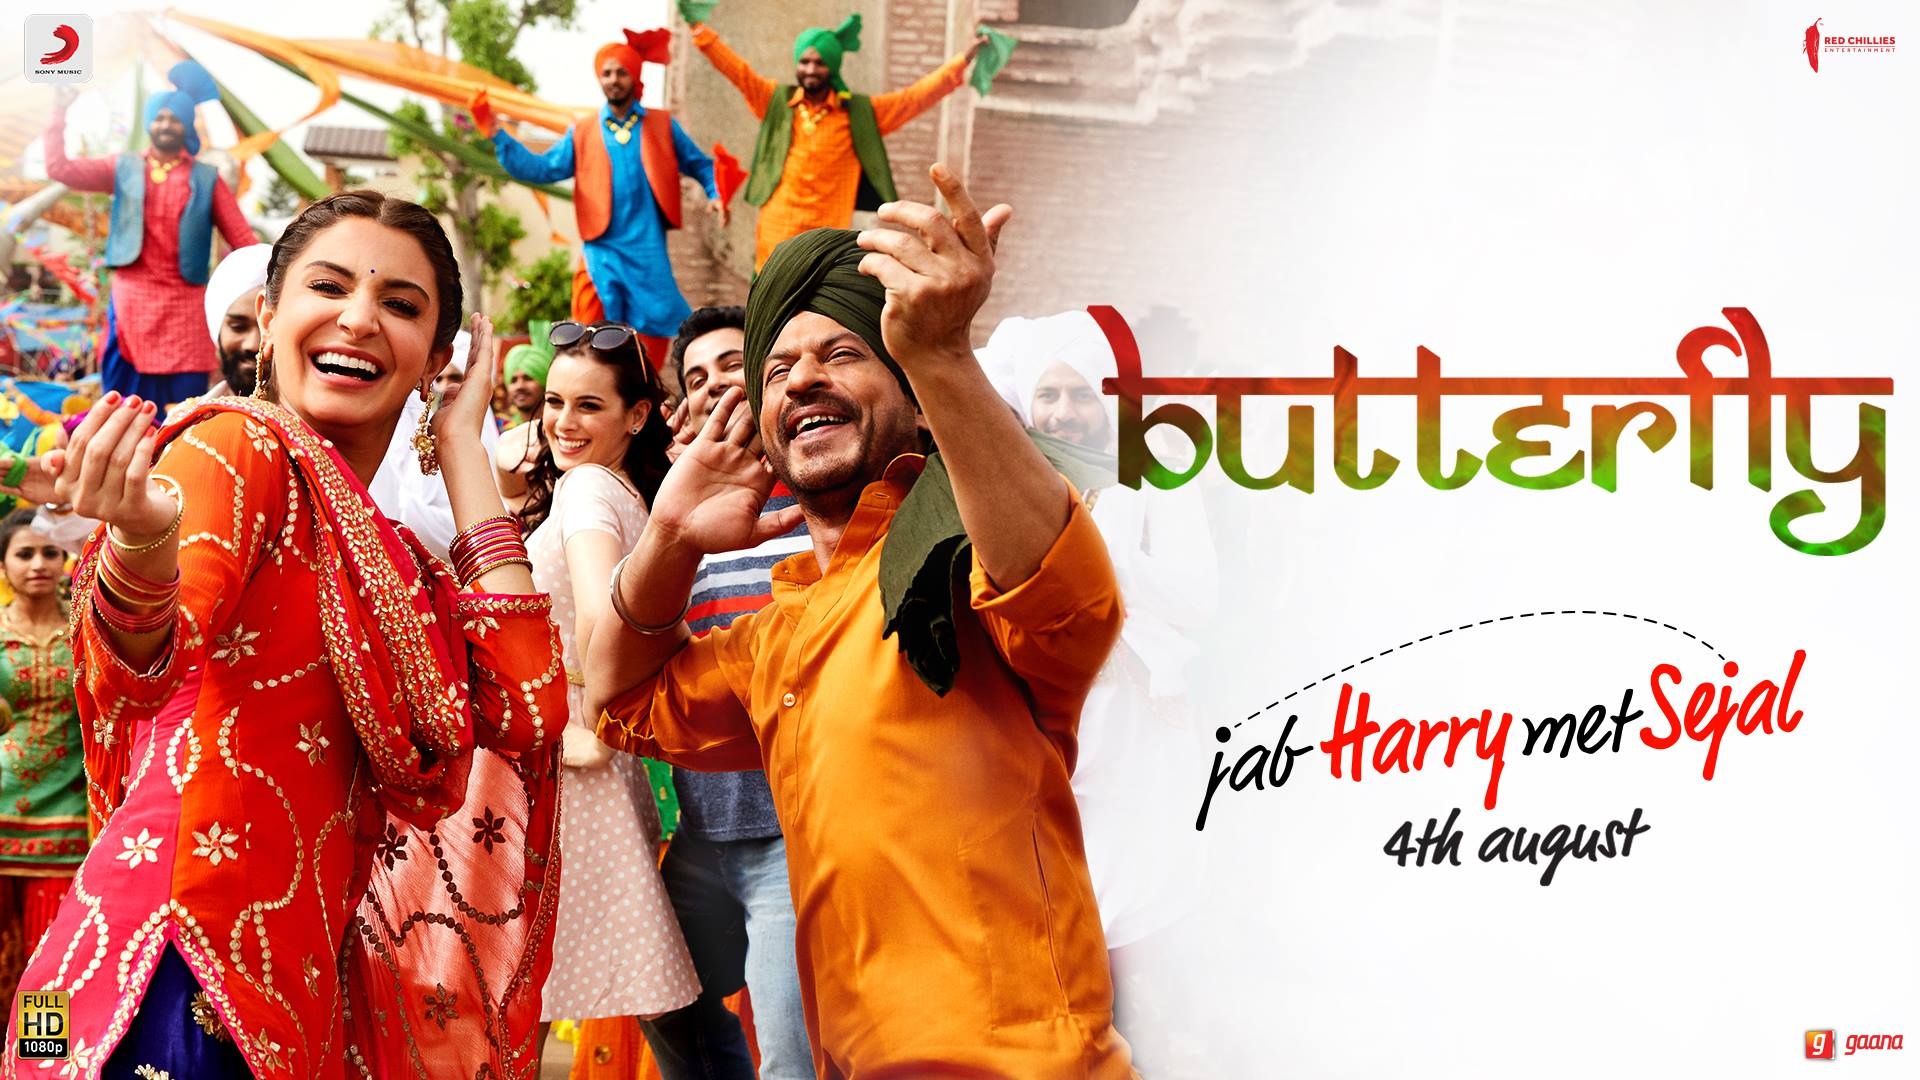 Watch #Butterfly from Jab Harry Met Sejal!  Anushka Sharma Imtiaz Ali Red Chillies Entertainment Sony Music India Pritam